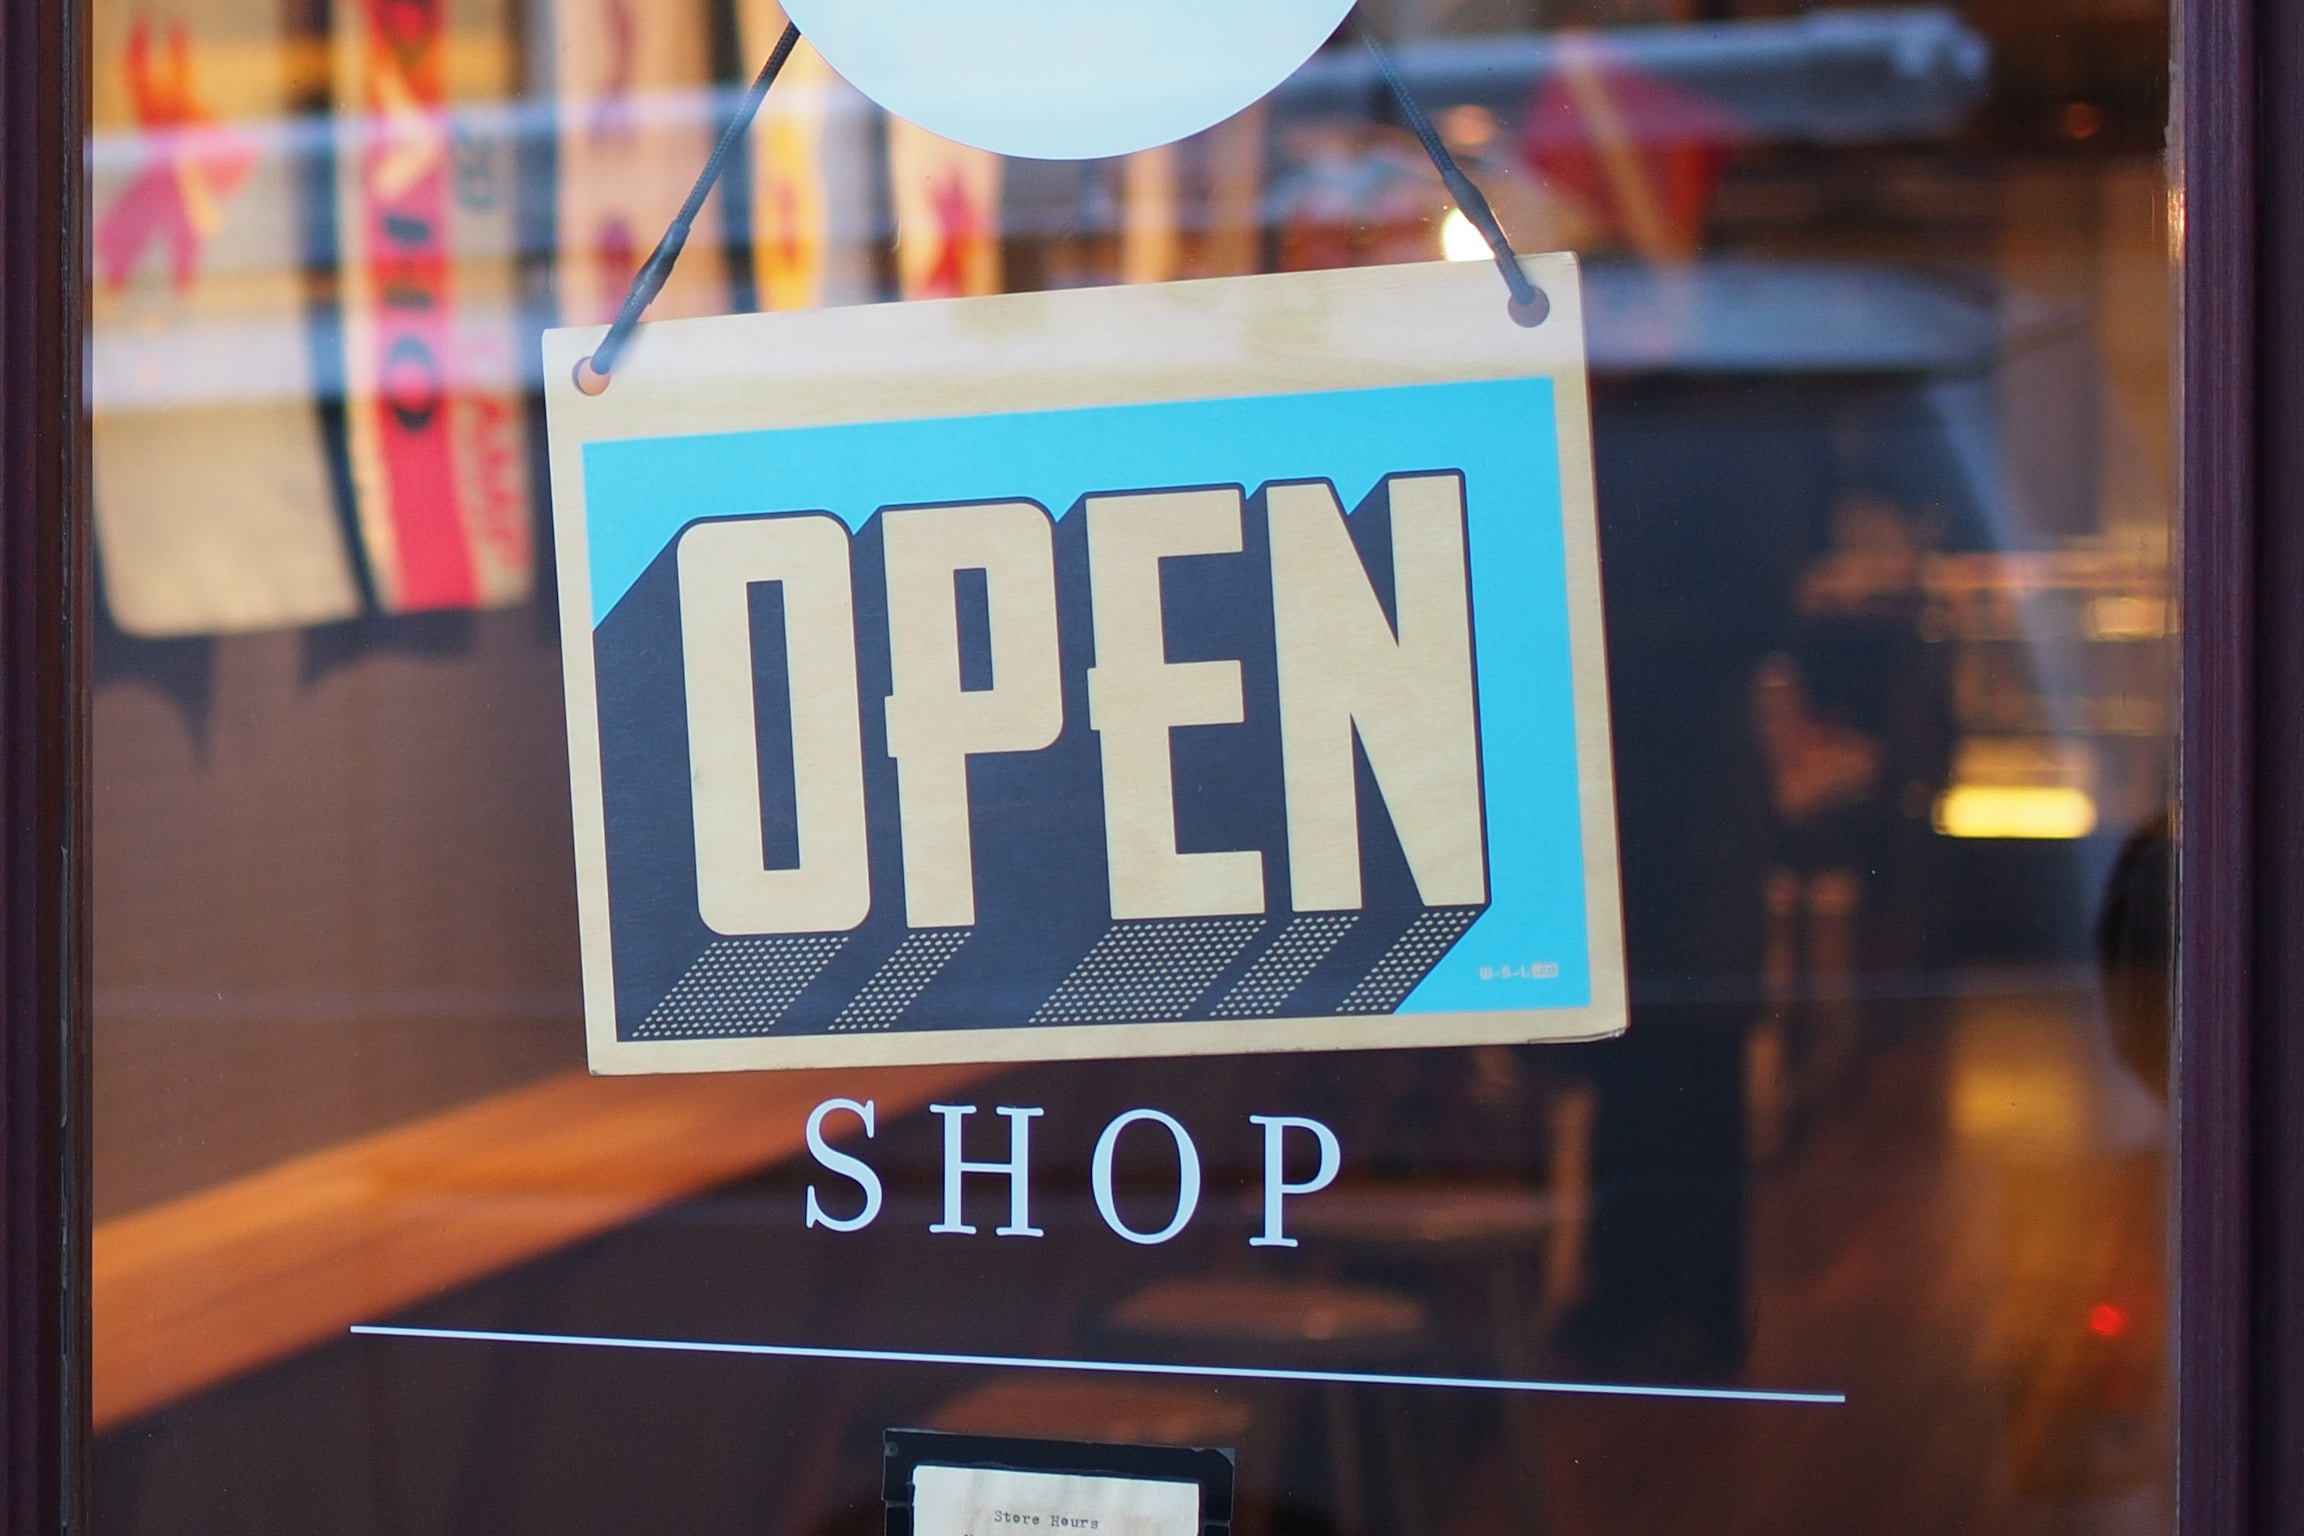 Open Shop - ecommerce   Photo by Mike Petrucci on Unsplash